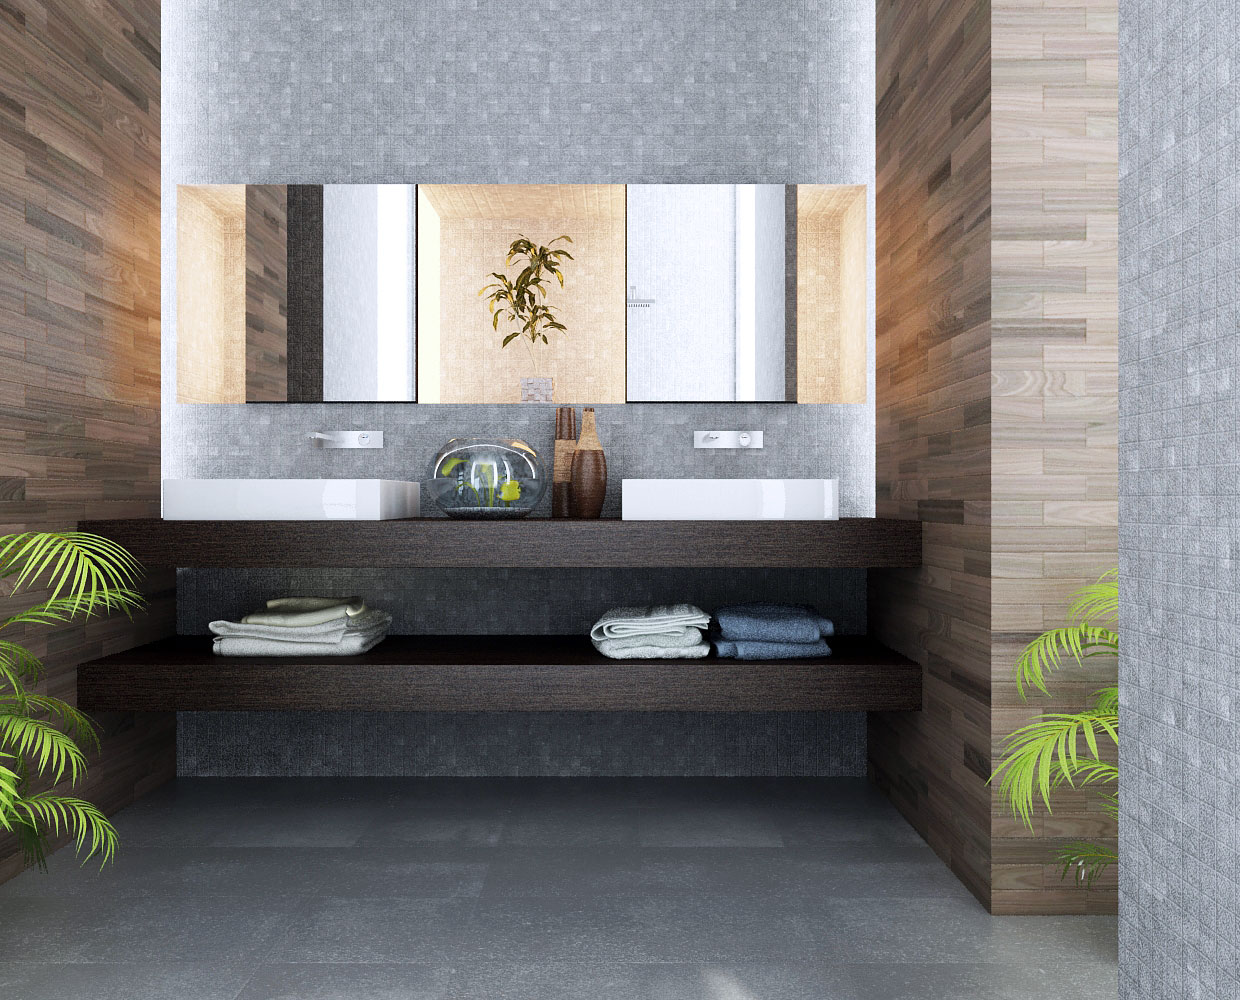 Modern Bathroom Design Ideas-home-designing.com